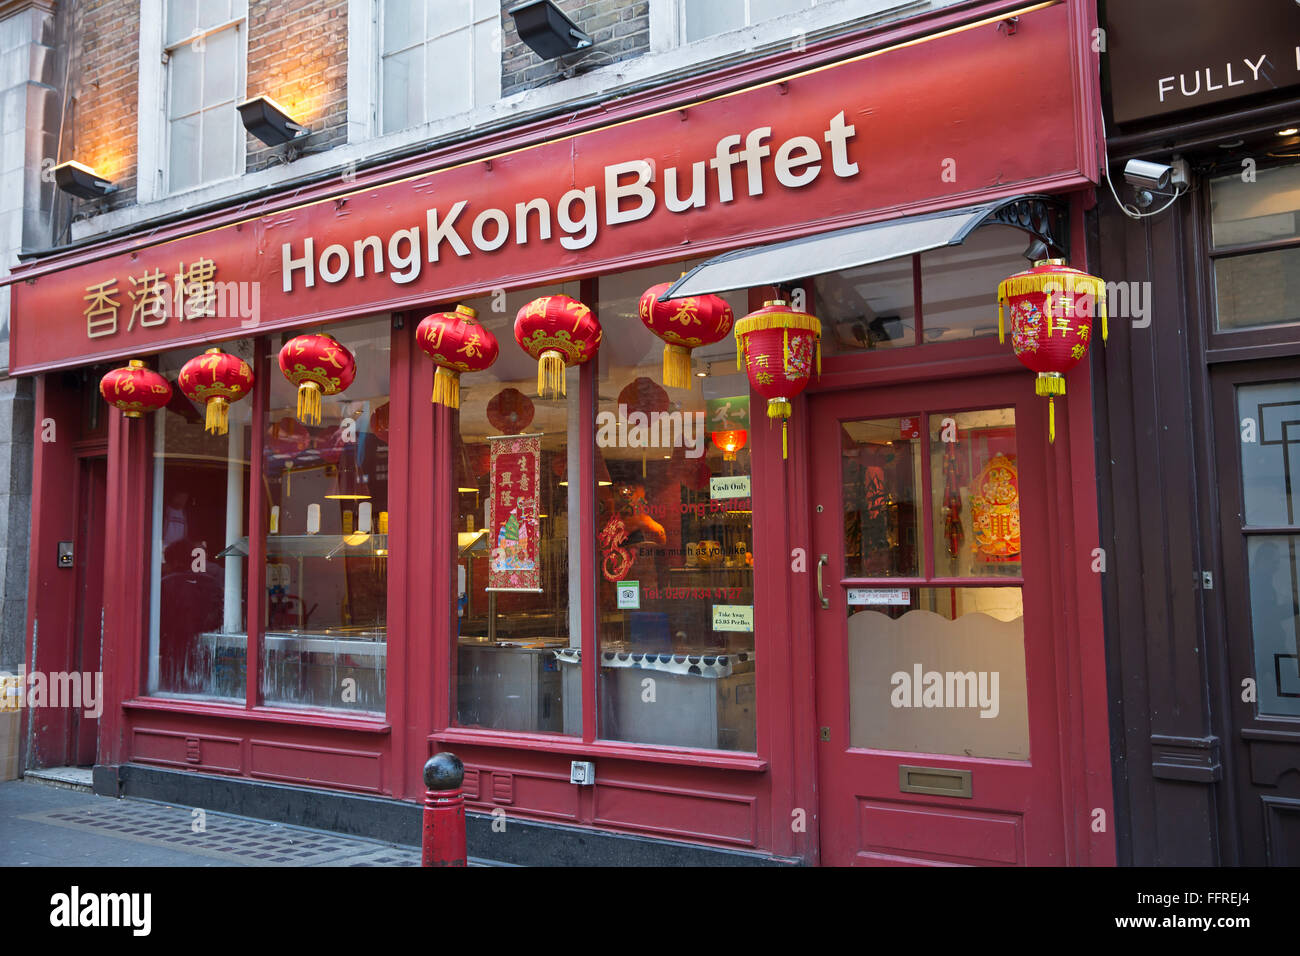 Cool Hong Kong Buffet Chinesisches Restaurant In China Town Download Free Architecture Designs Itiscsunscenecom